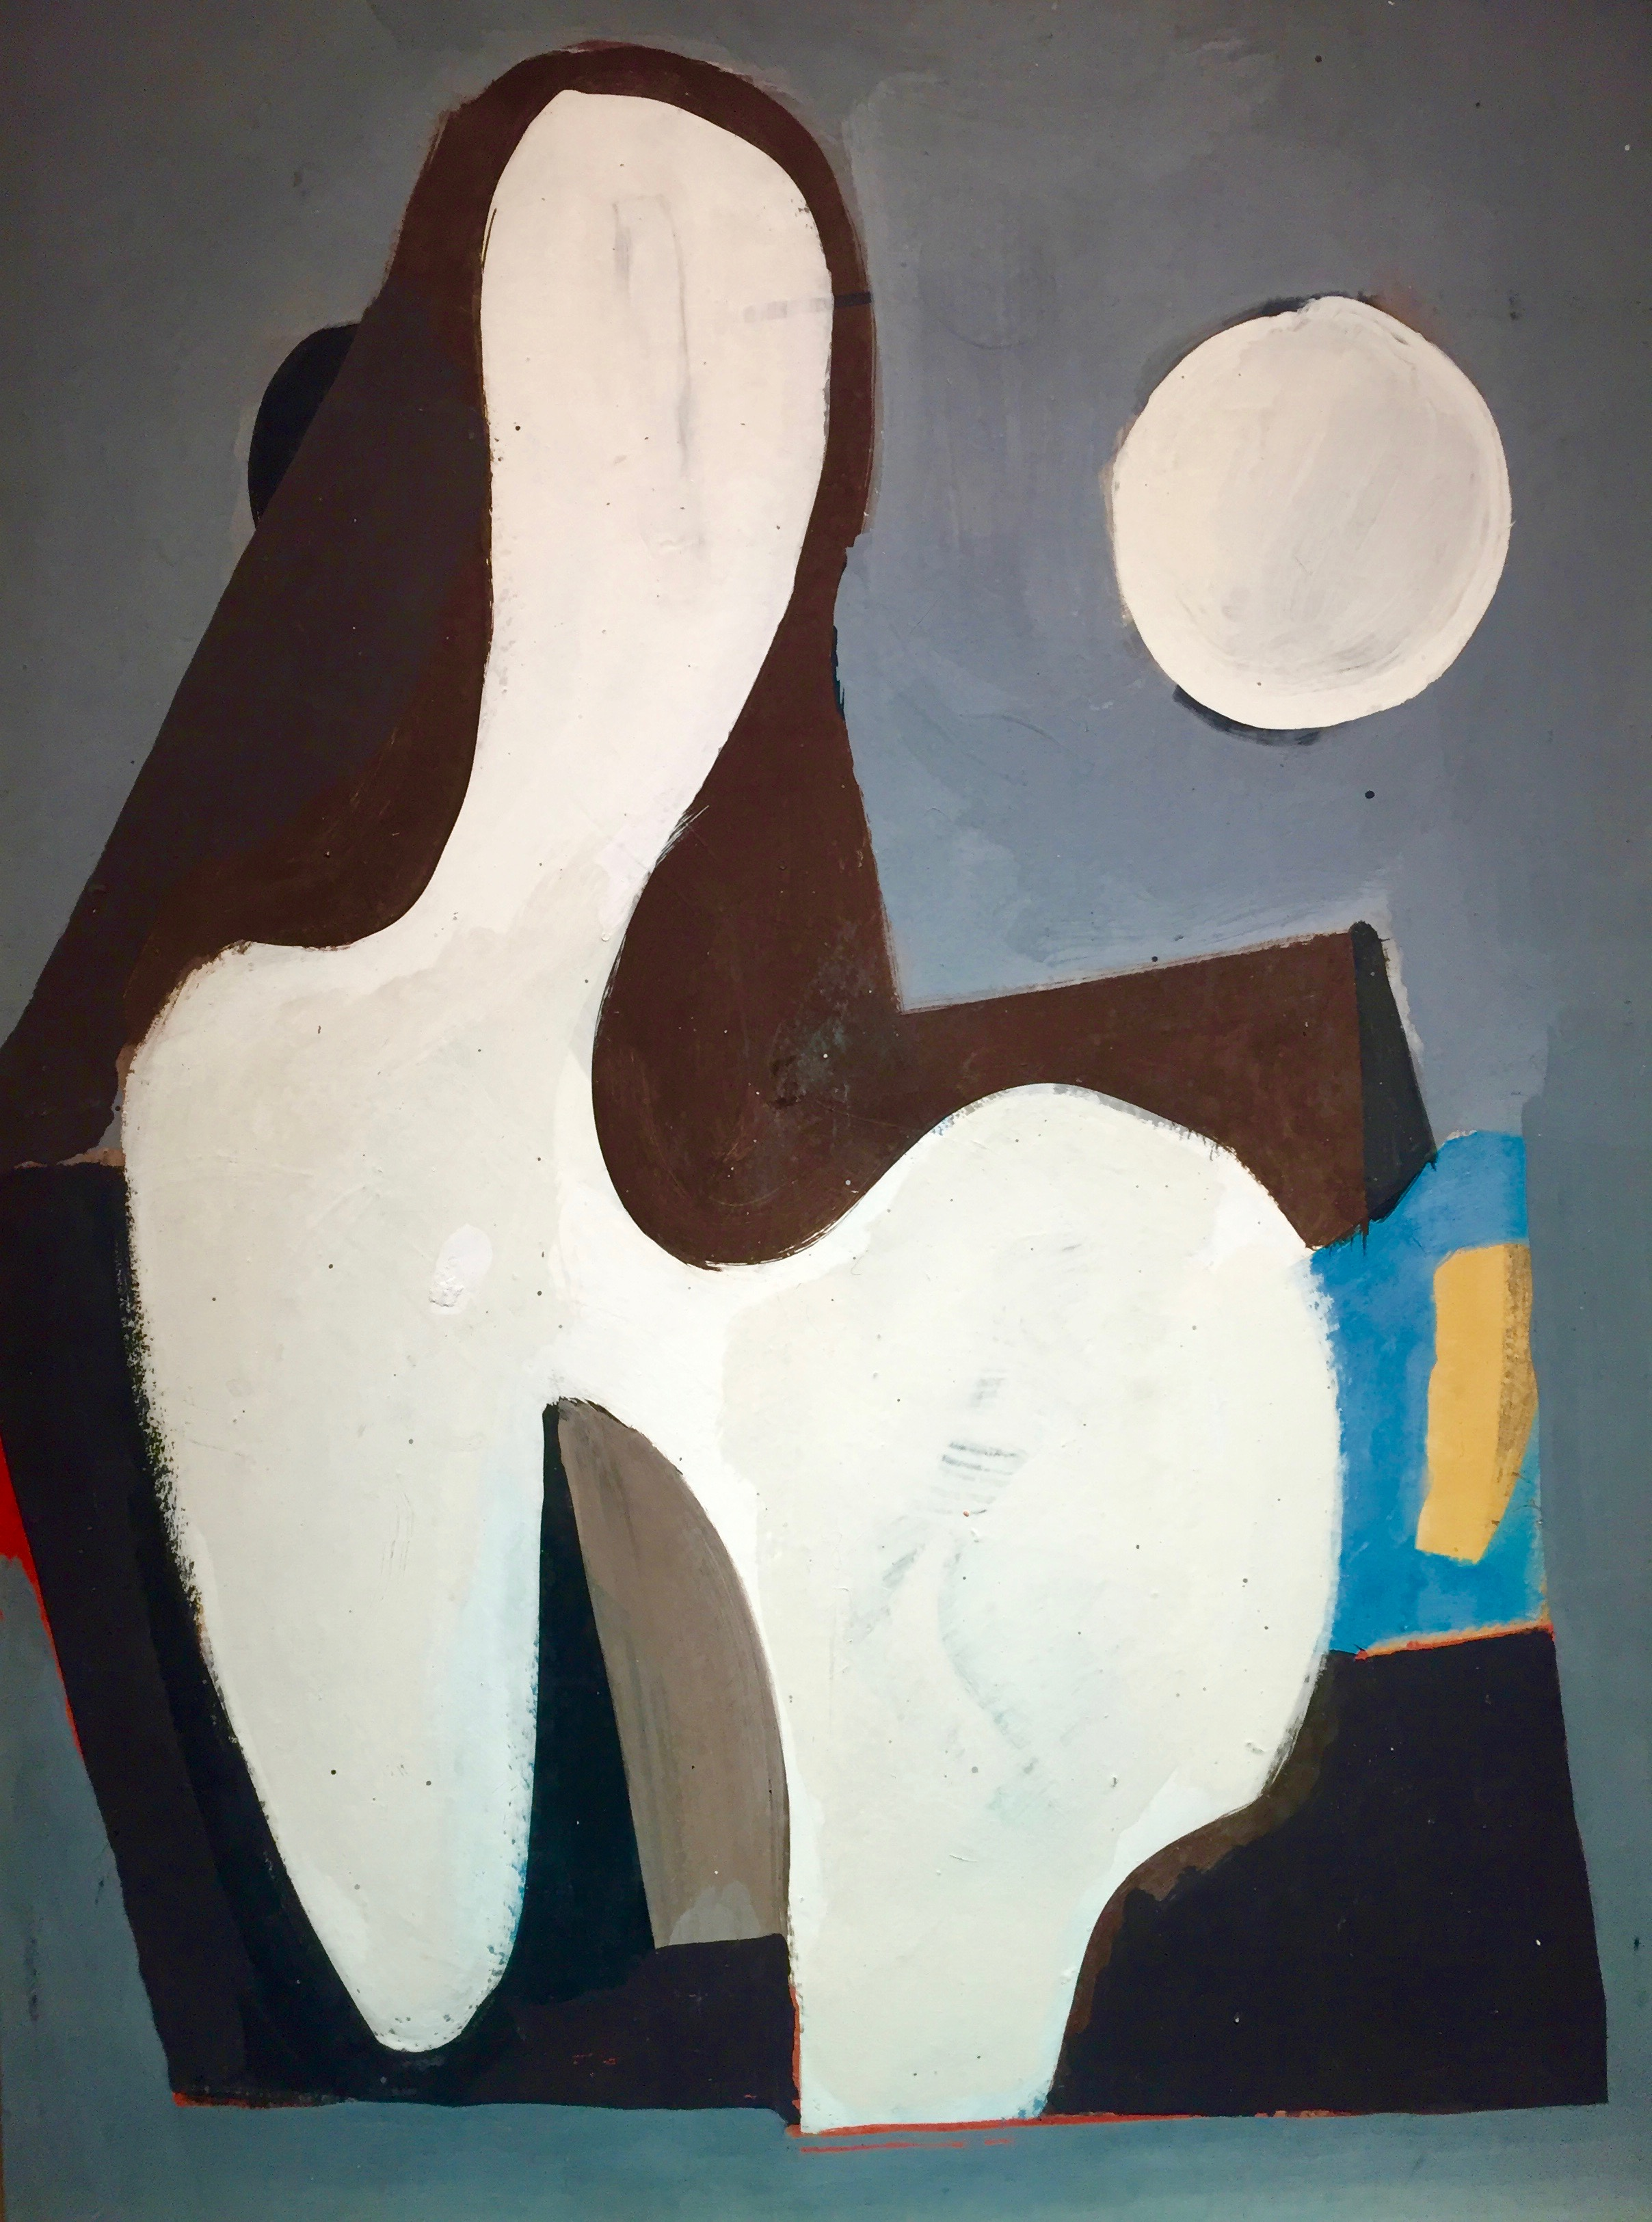 Geometric figure, 1938    Medium: Paintings, Oil on board Size: 23 x 18 in. (58.4 x 45.7 cm.)  Markings: Signed and dated in the back